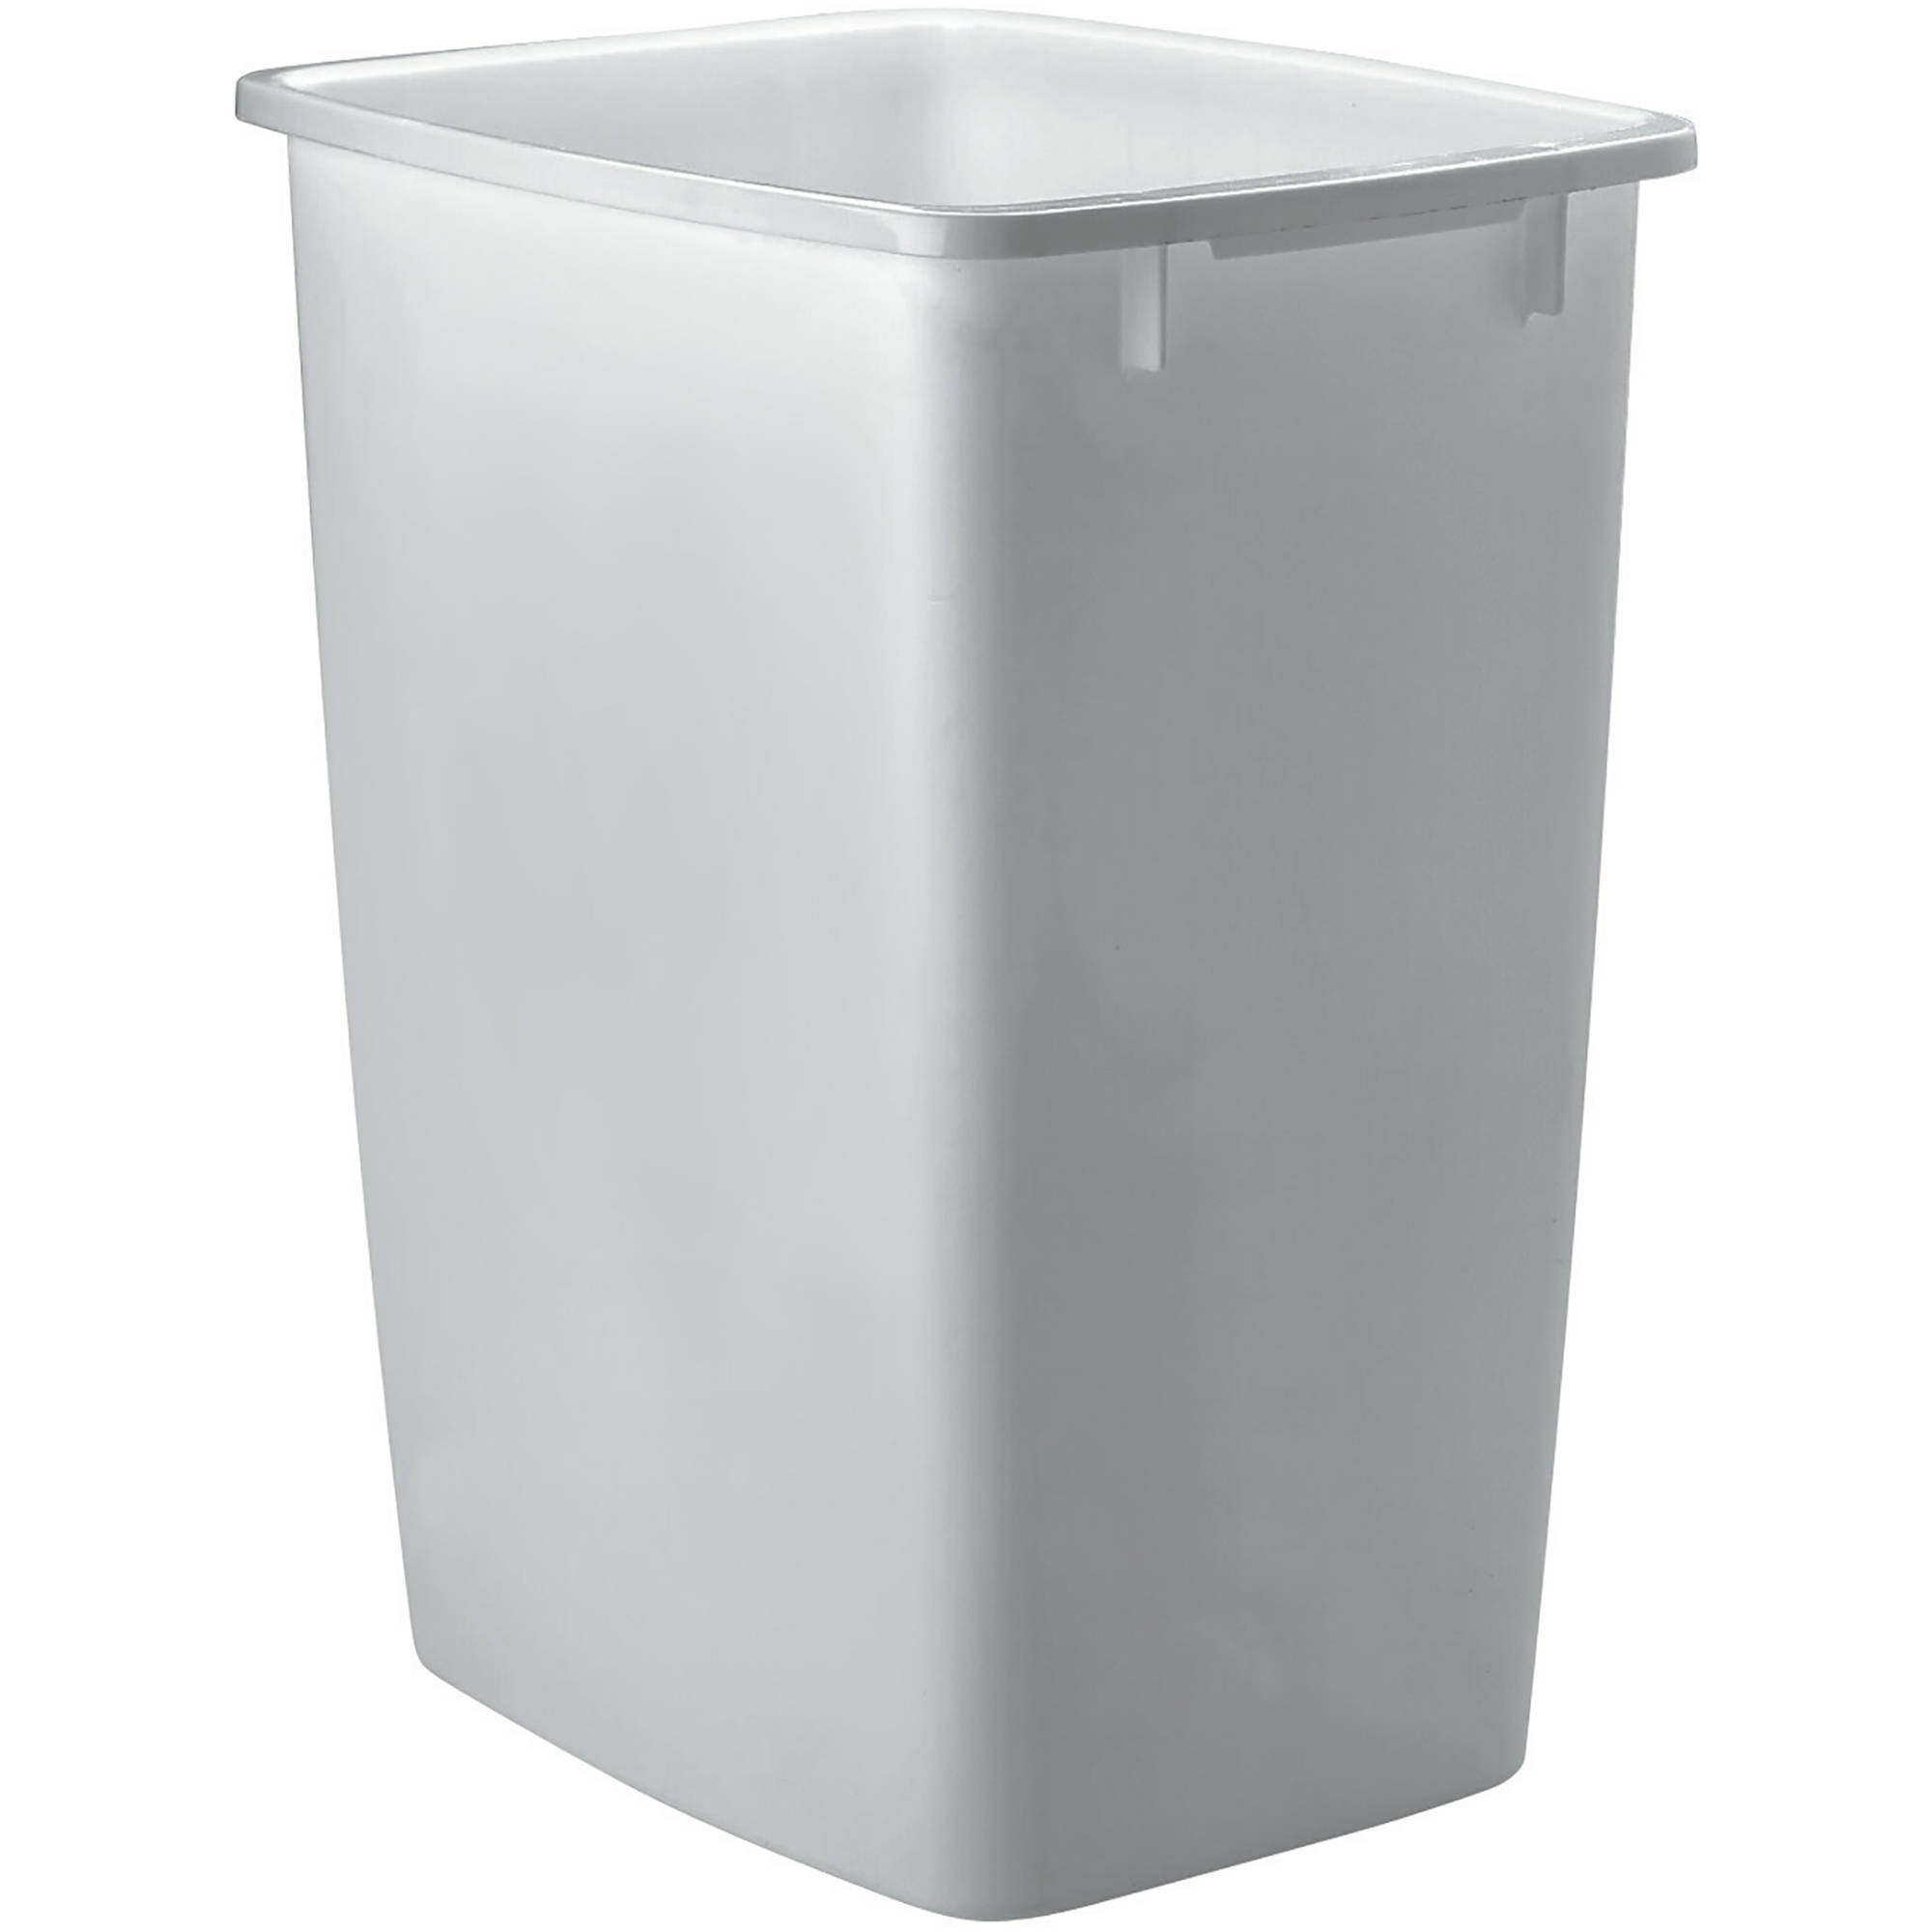 Rubbermaid Wastebasket, 9 Gal, White   Walmart.com